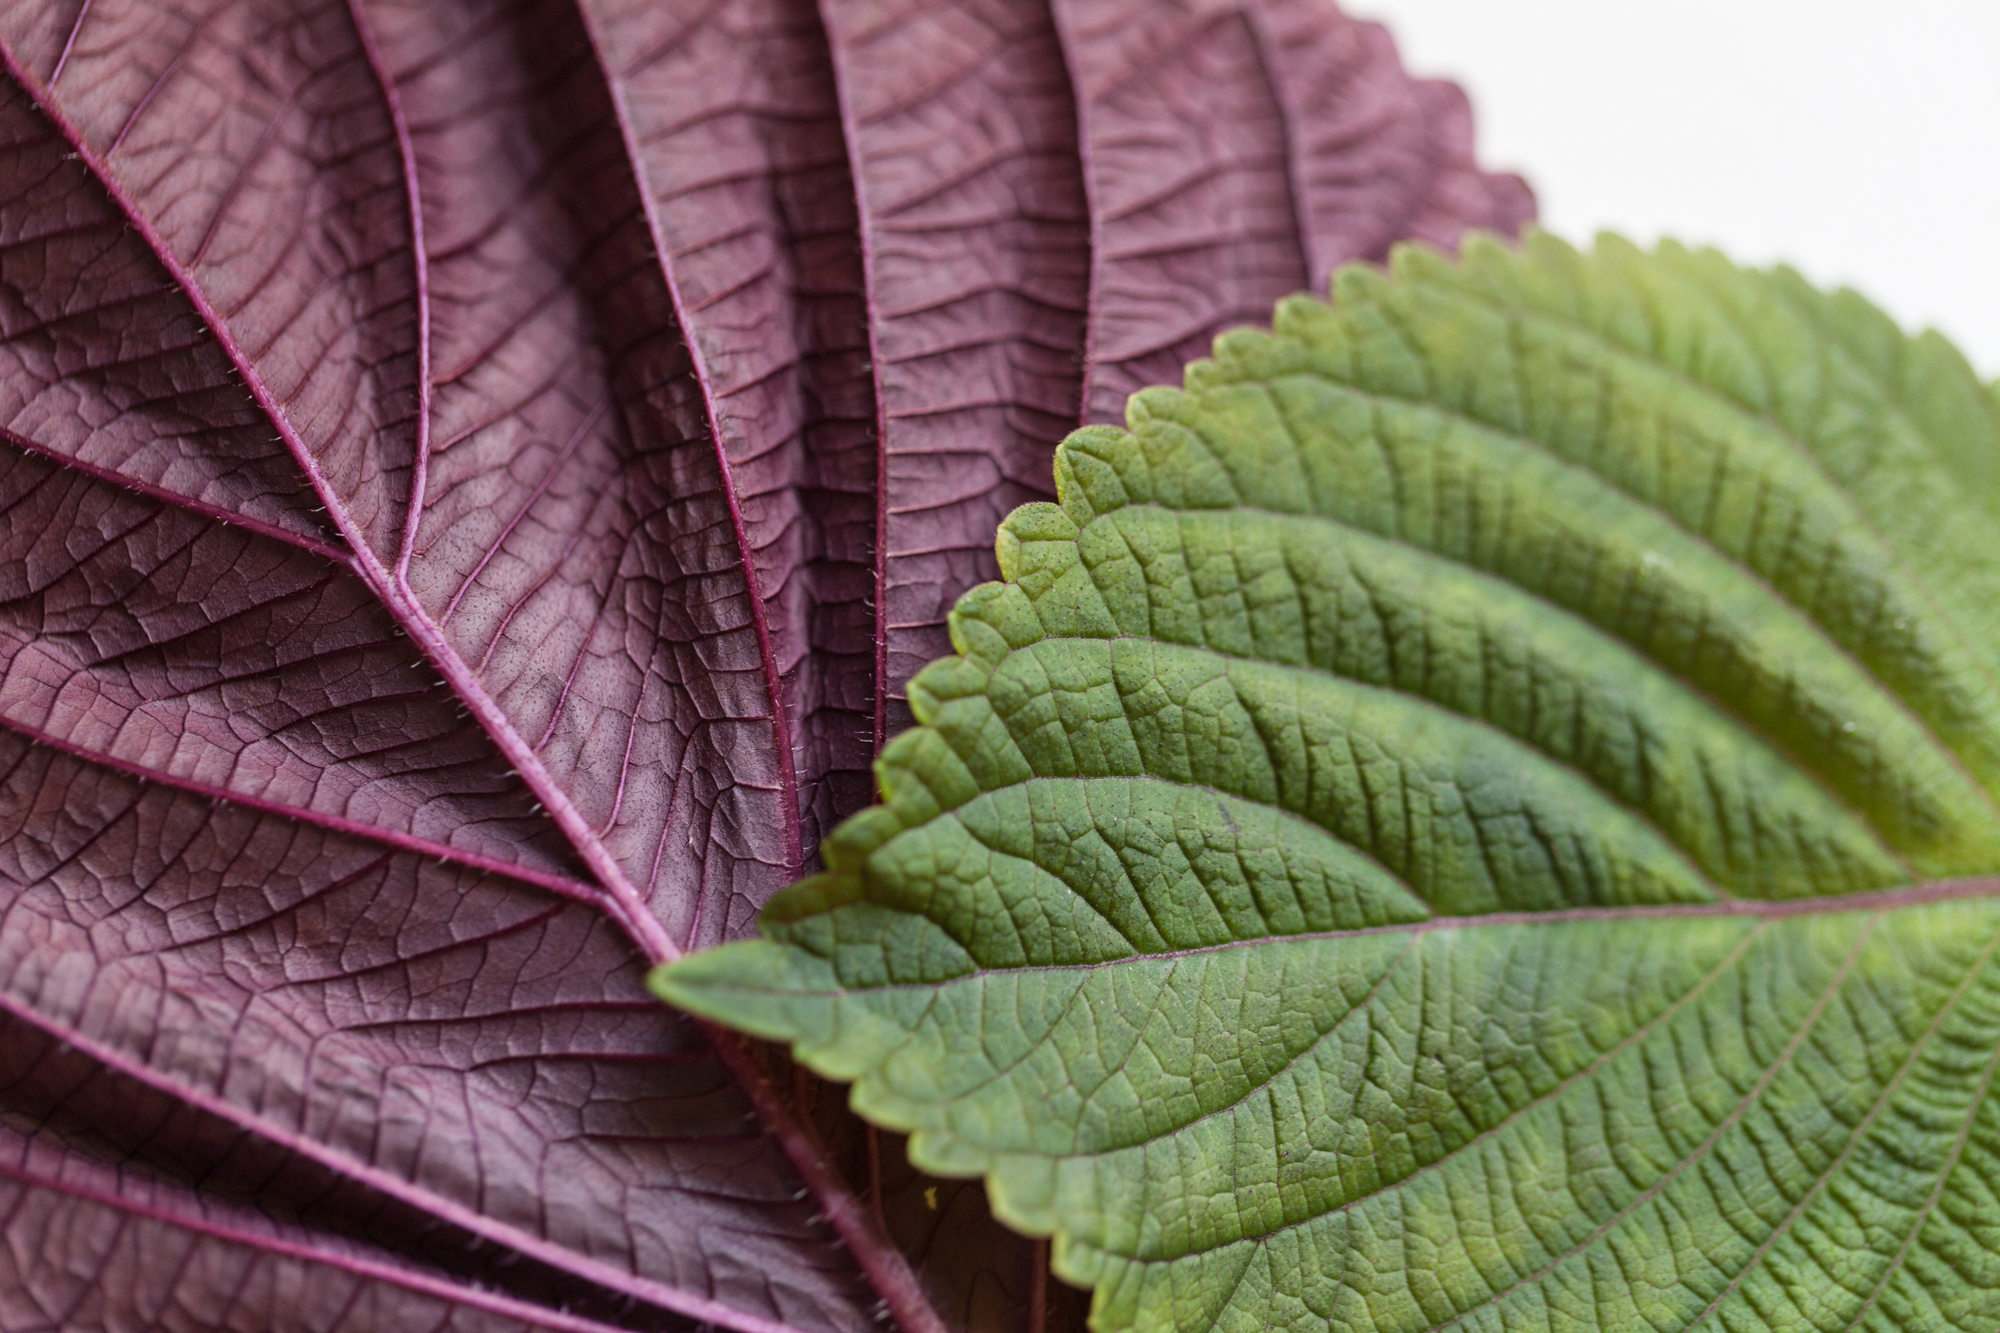 Red shiso ( Perilla frutescens ) is another interesting herb, which has a noticeable cinnamon or clove flavor, with a little hint of cumin. It's popular in Asian cooking.